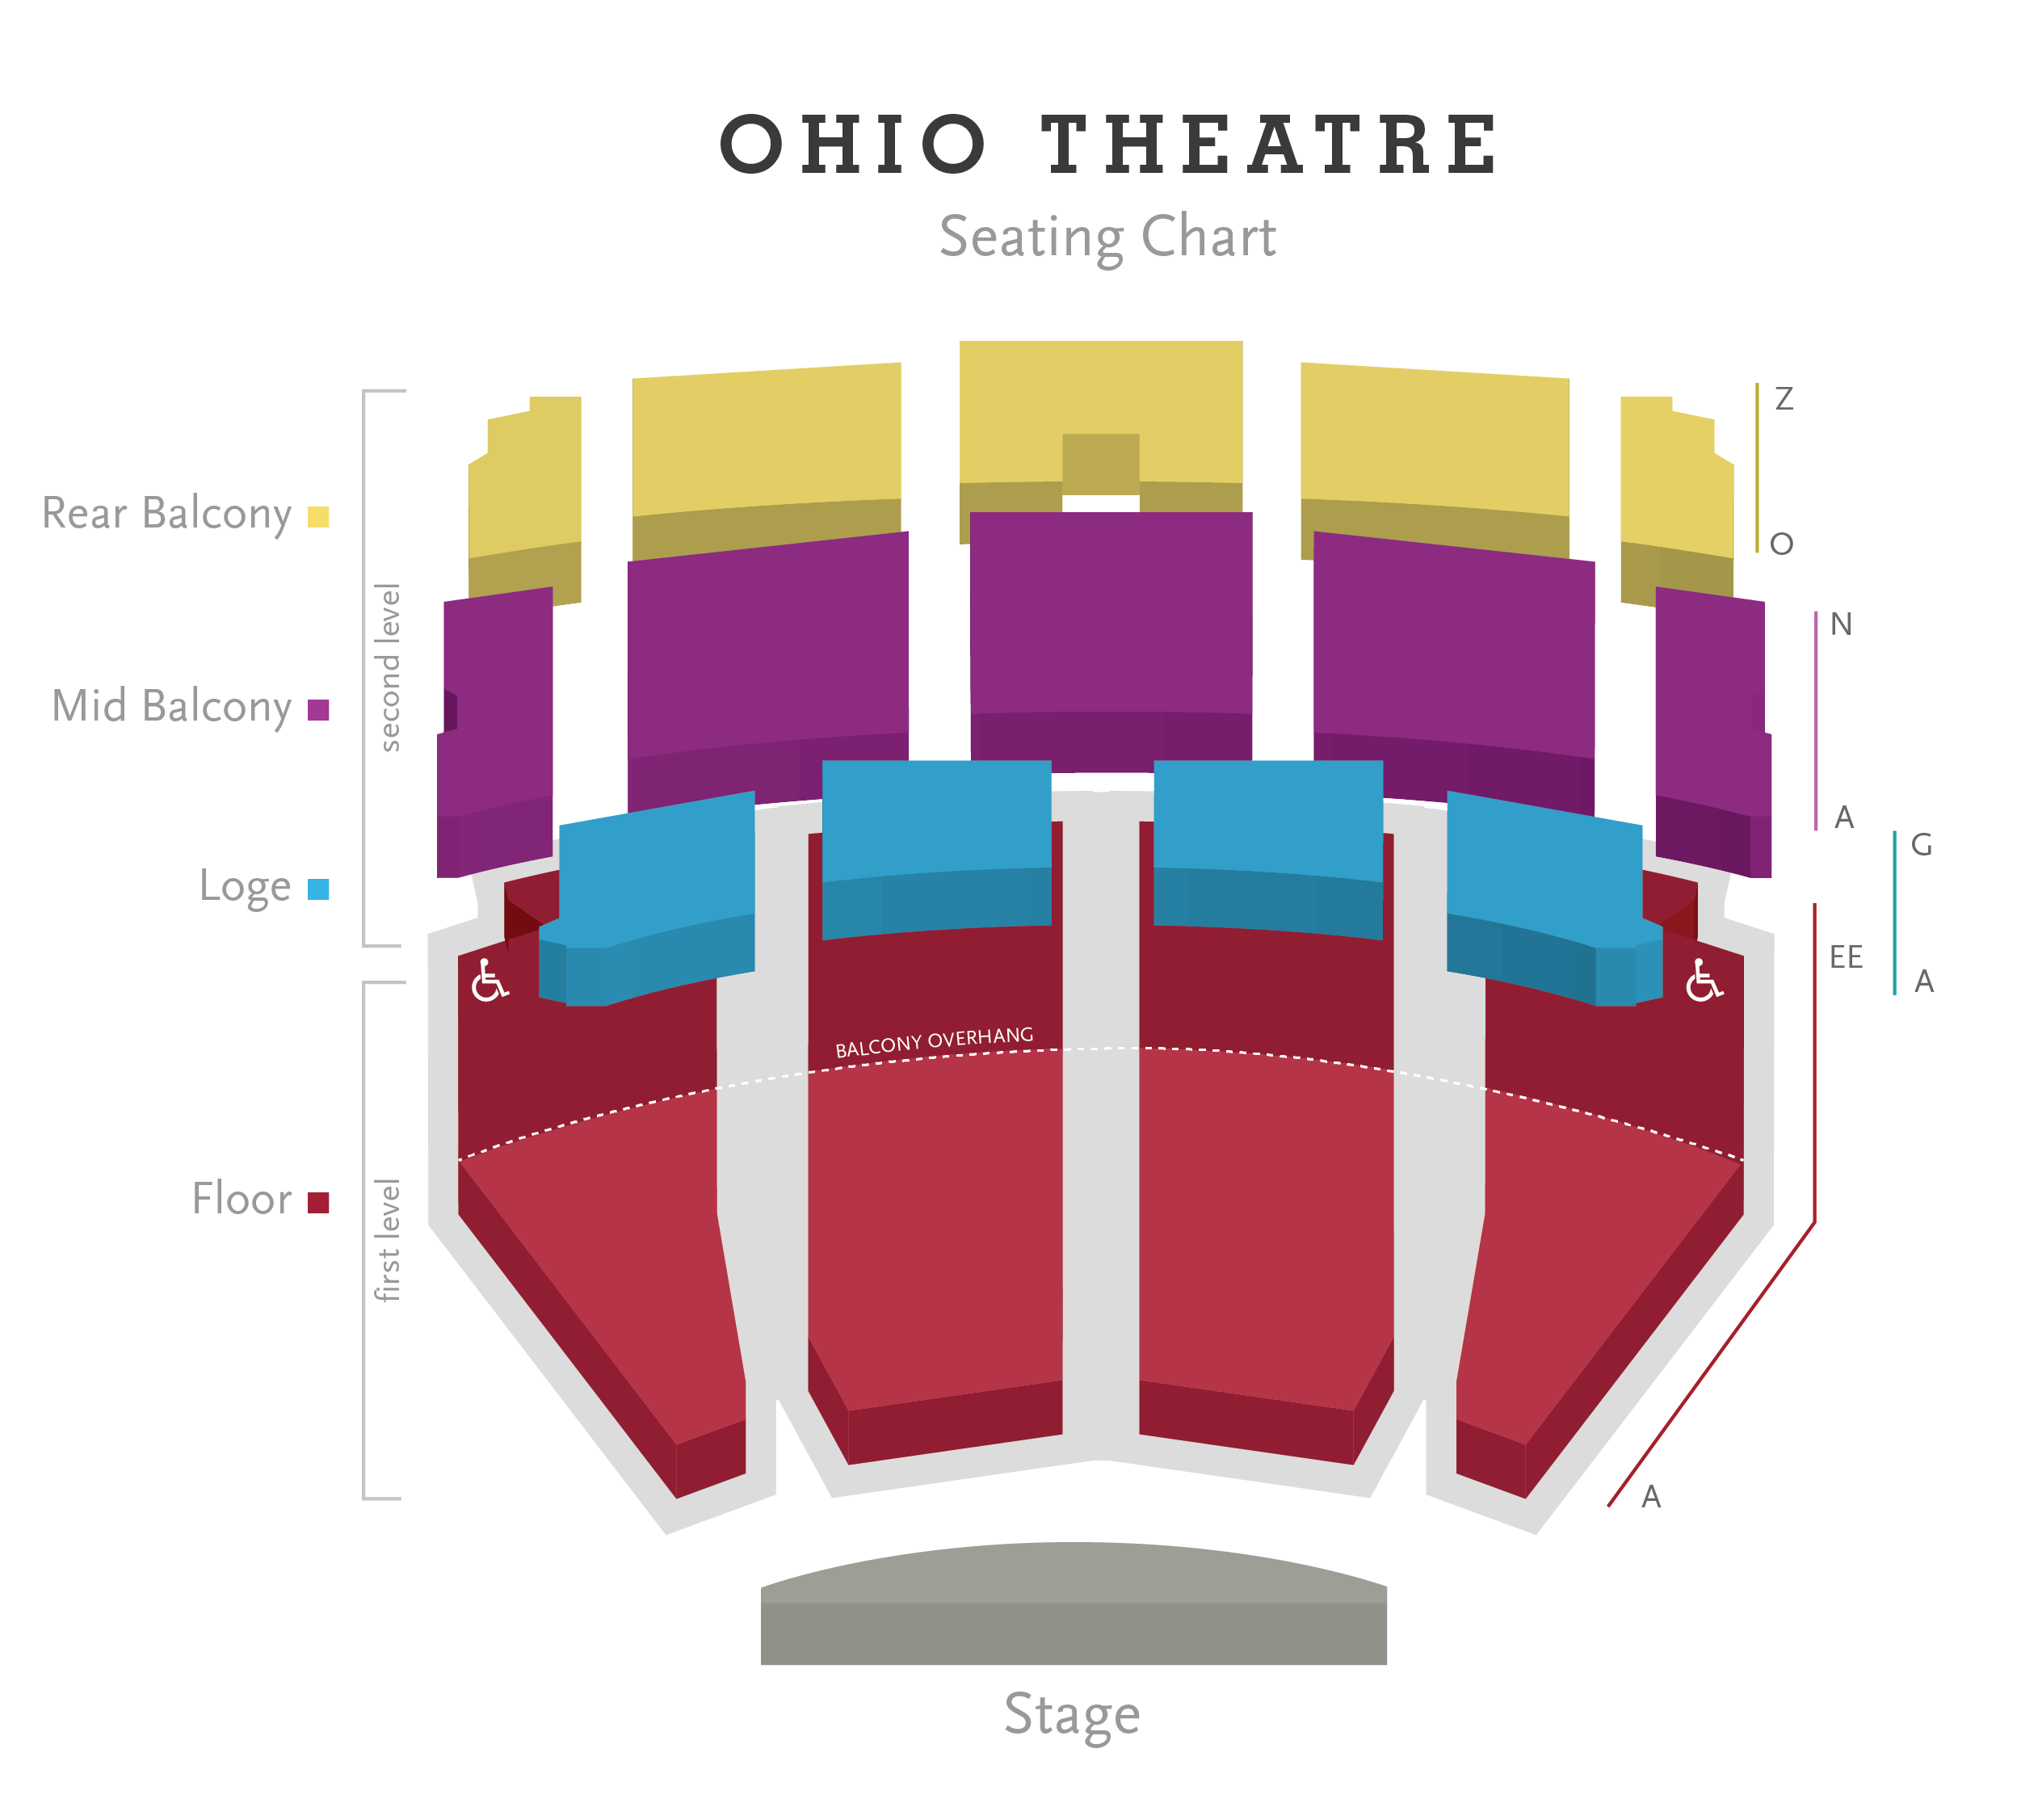 Ohio Theatre Seating Chart.png